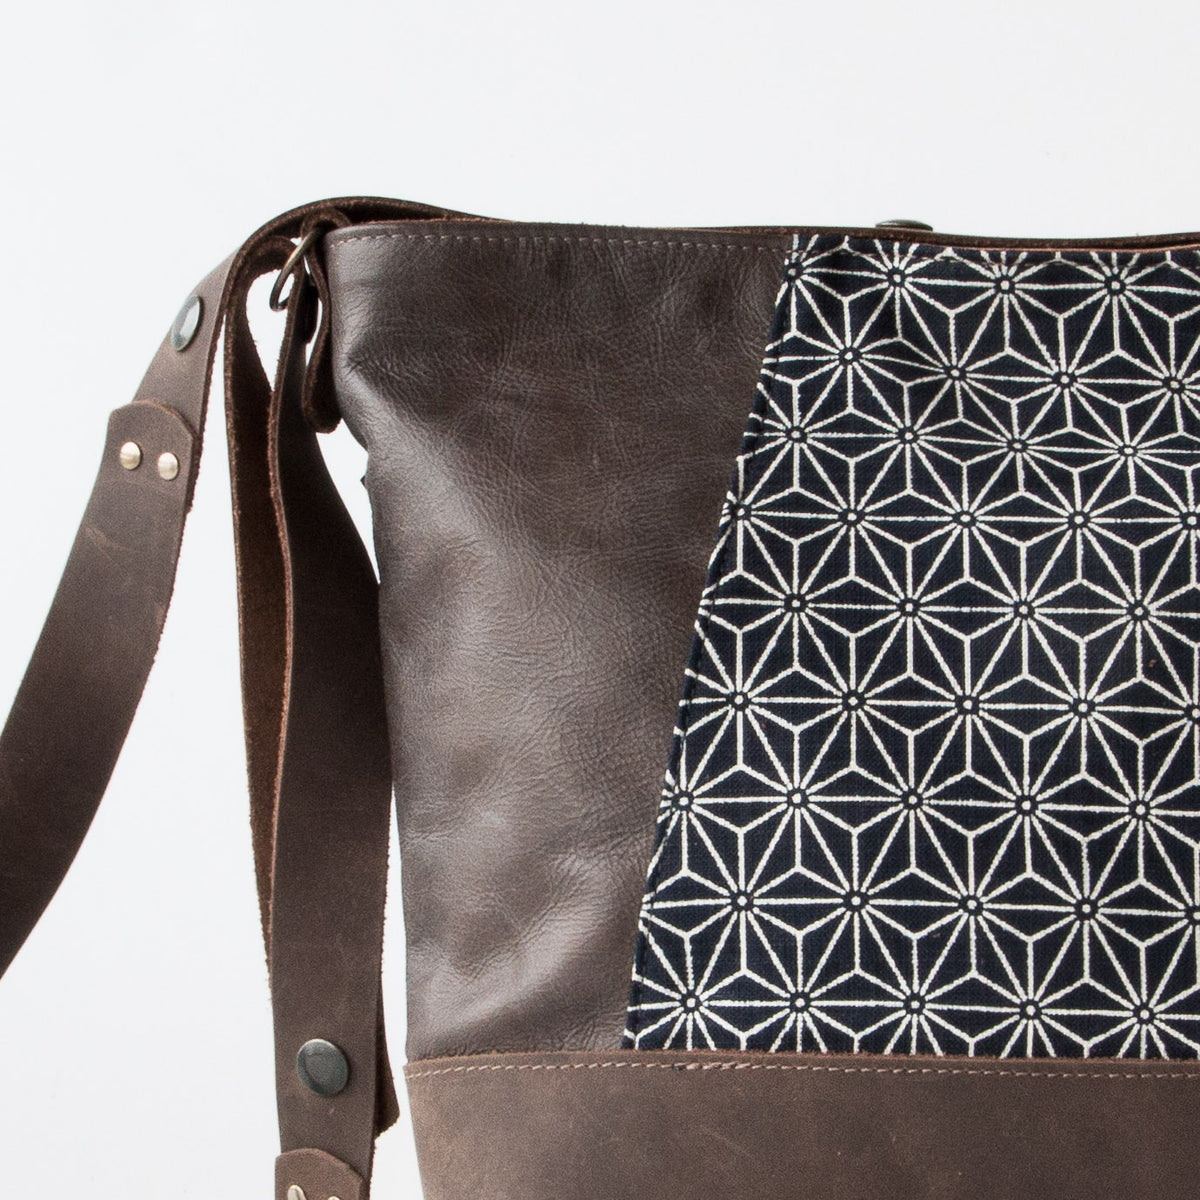 Detail view - Yupik - Adjustable Leather Shoulder Bag with Japanese Fabric - Sold by Chic & Basta